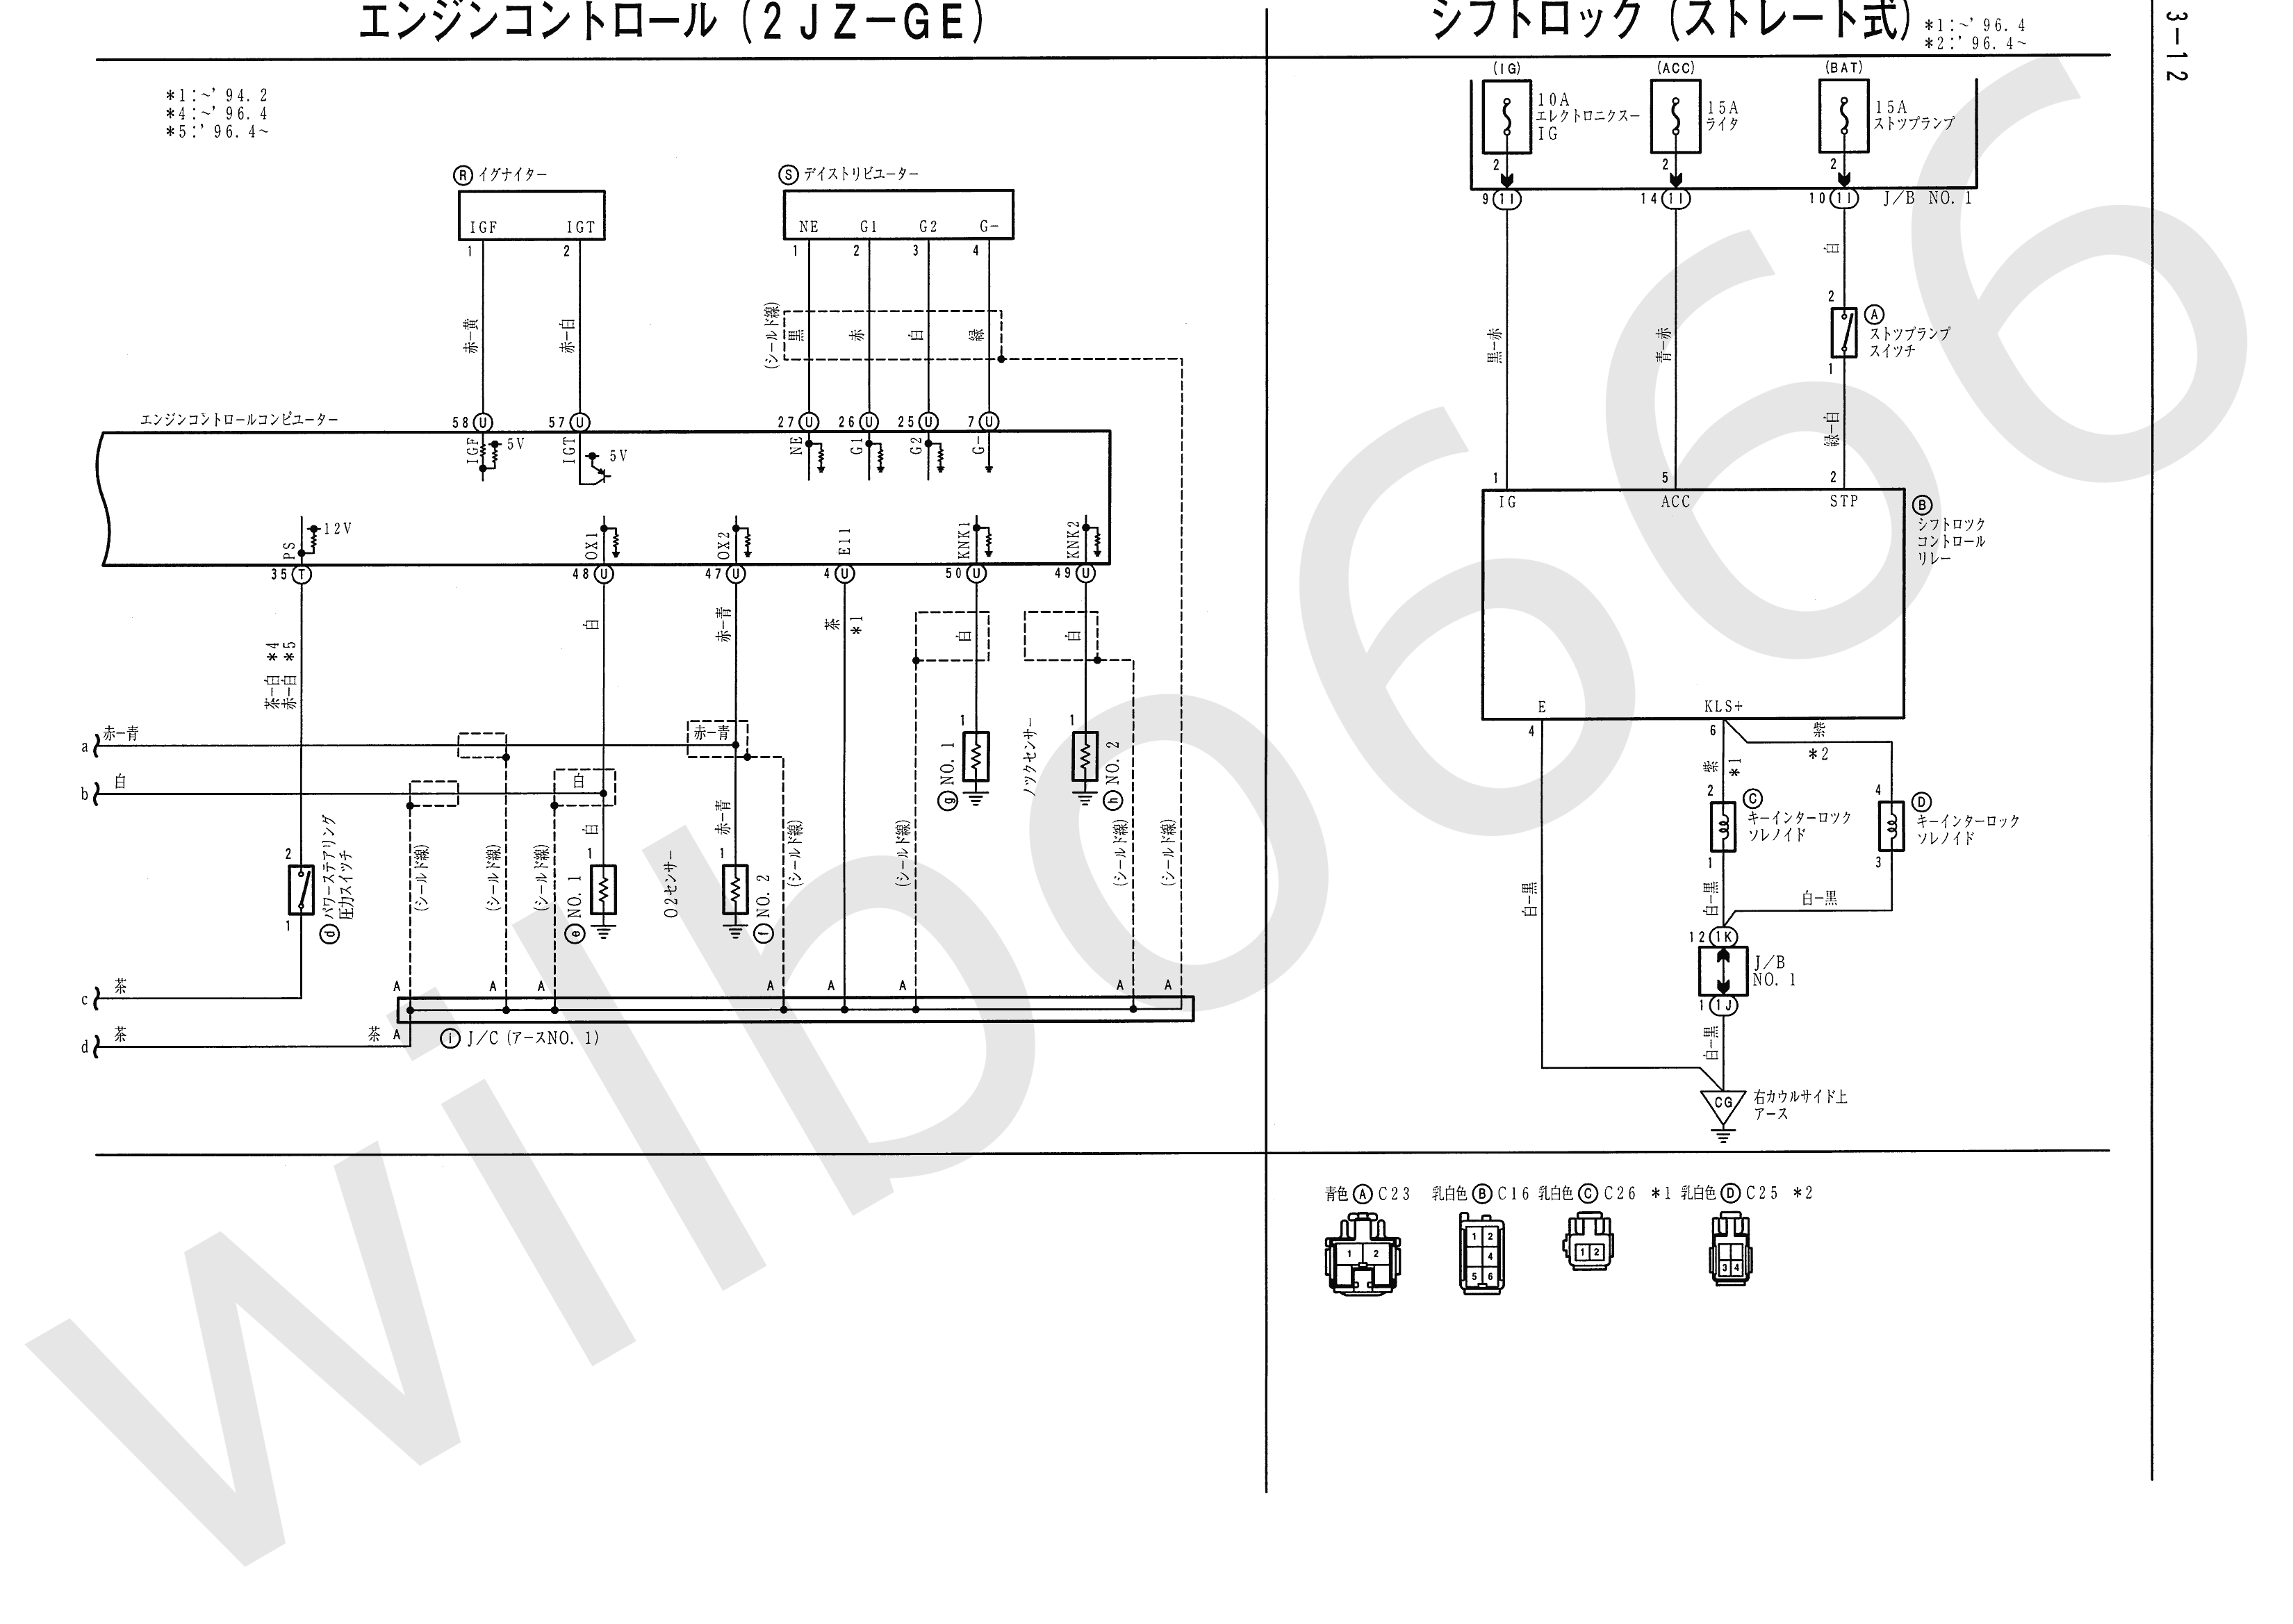 JZA80 Electrical Wiring Diagram 6742505 3 12 wilbo666 2jz ge jza80 supra engine wiring electrical wiring diagram books at virtualis.co